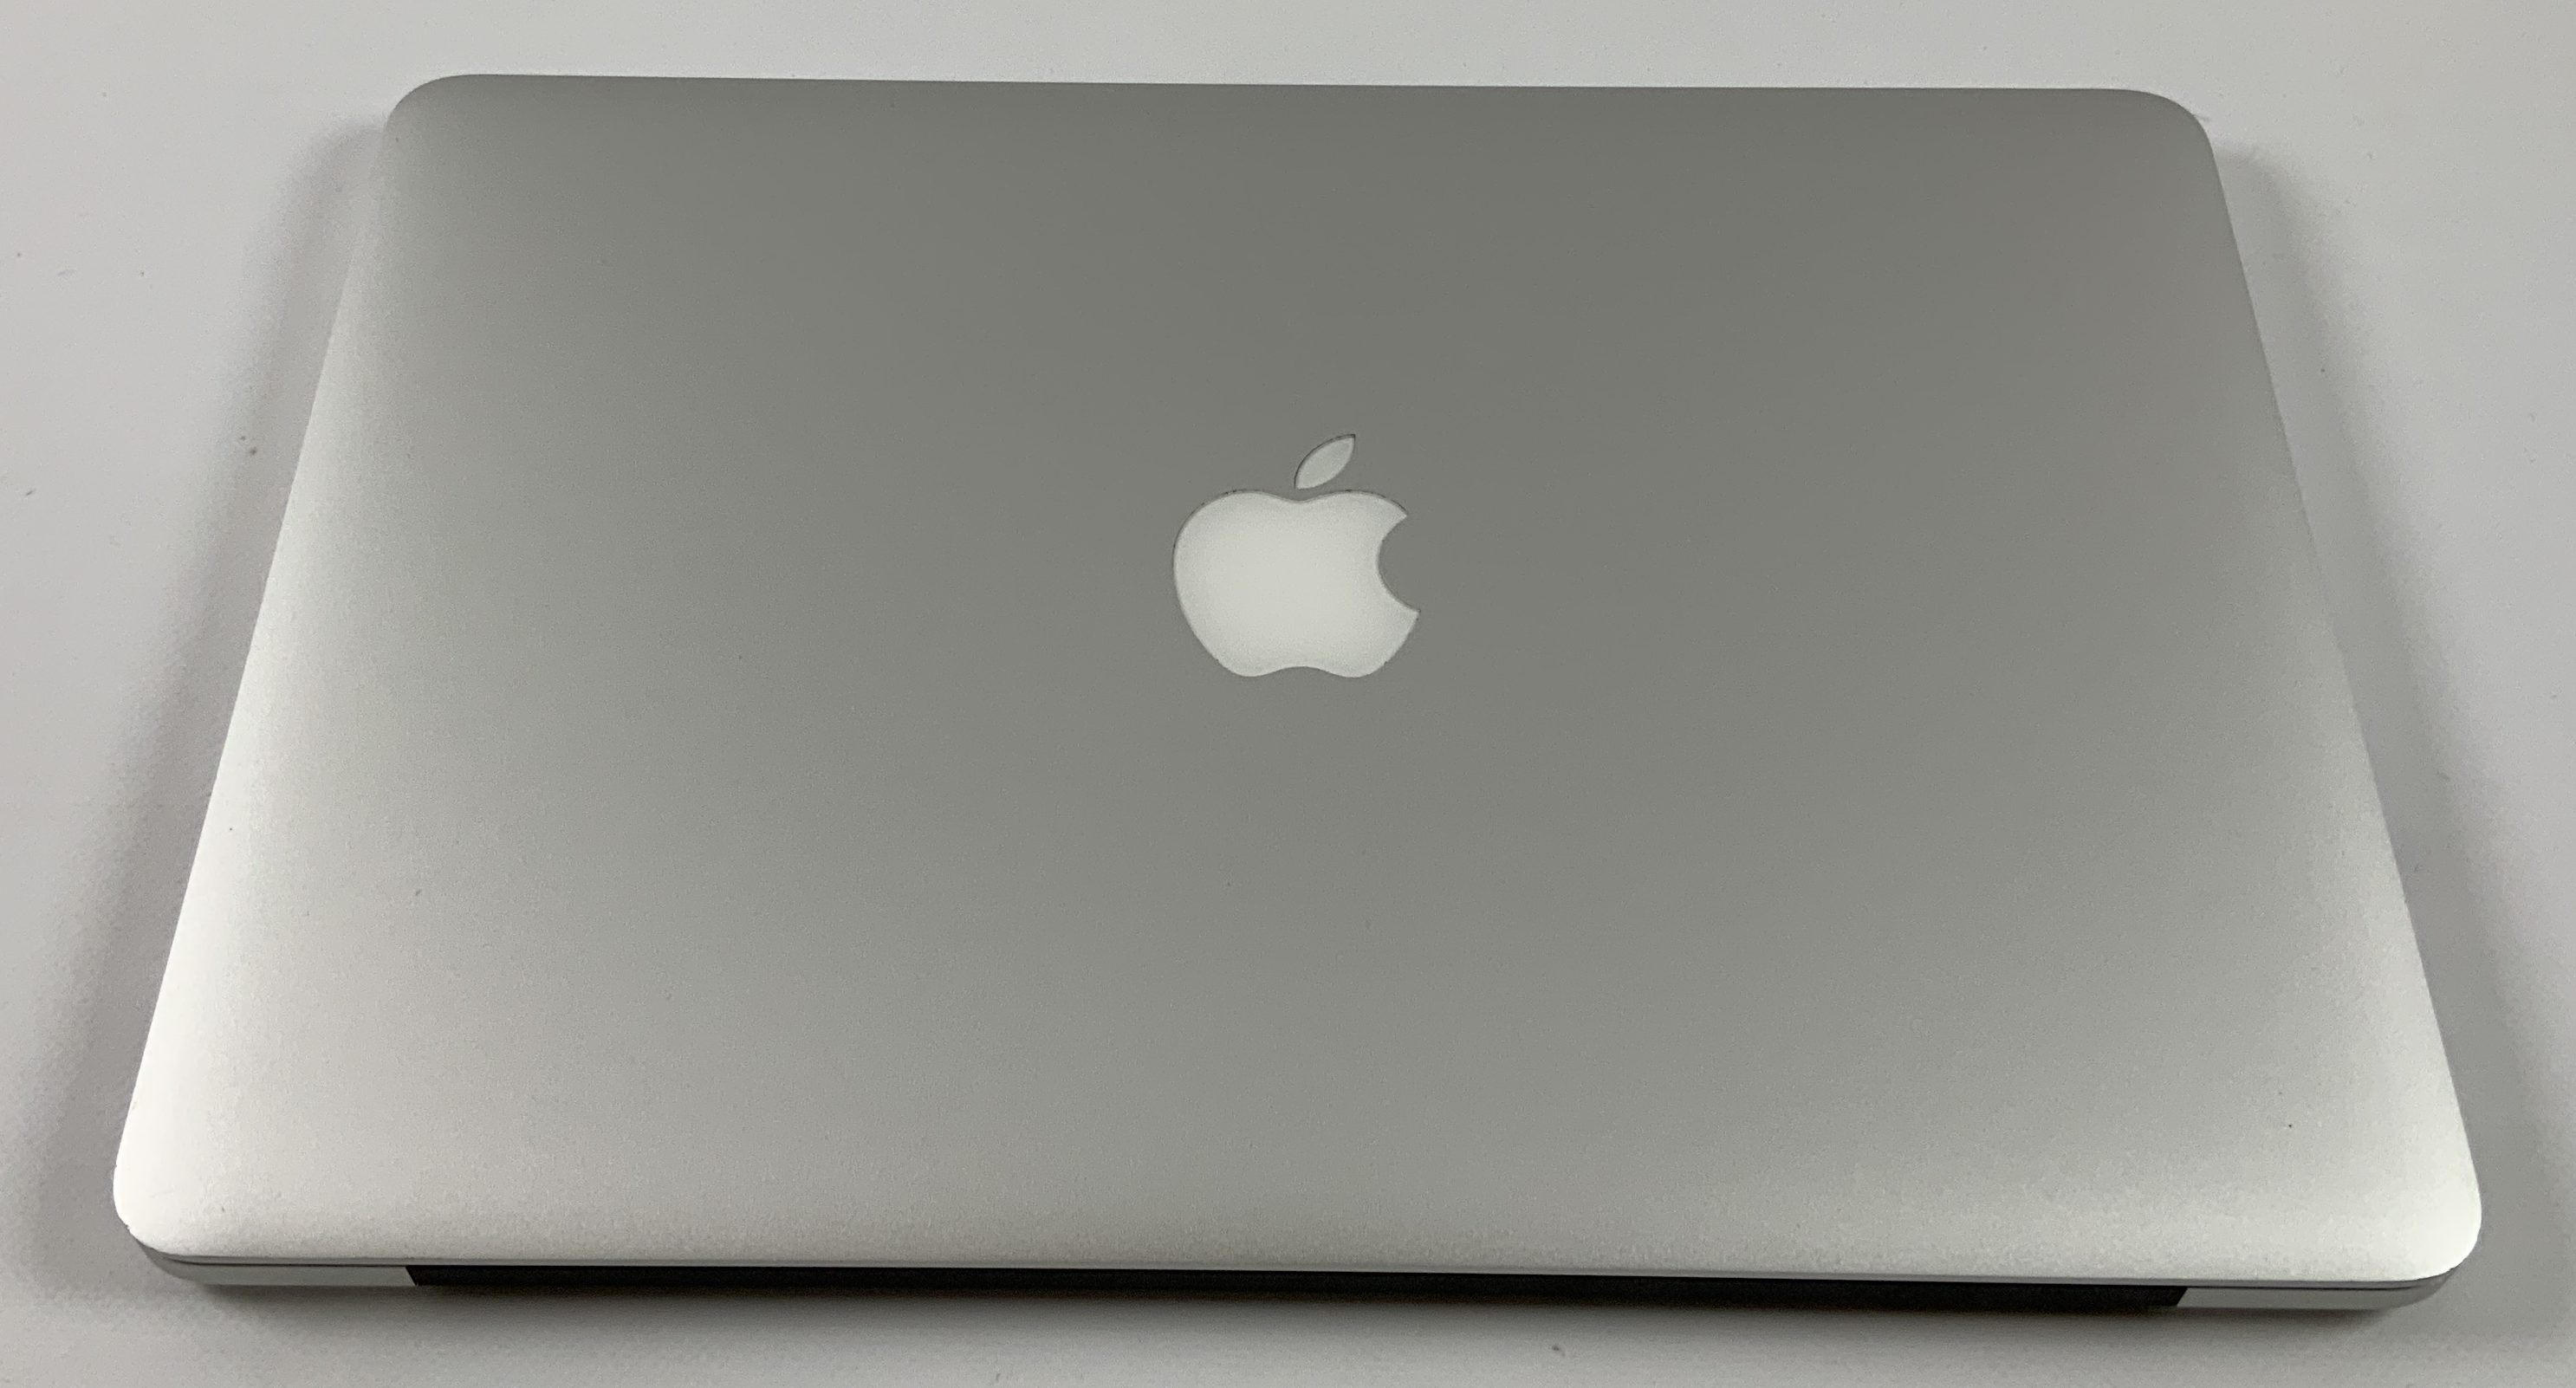 "MacBook Pro Retina 13"" Early 2015 (Intel Core i5 2.7 GHz 8 GB RAM 128 GB SSD), Intel Core i5 2.7 GHz, 8 GB RAM, 128 GB SSD, Kuva 2"